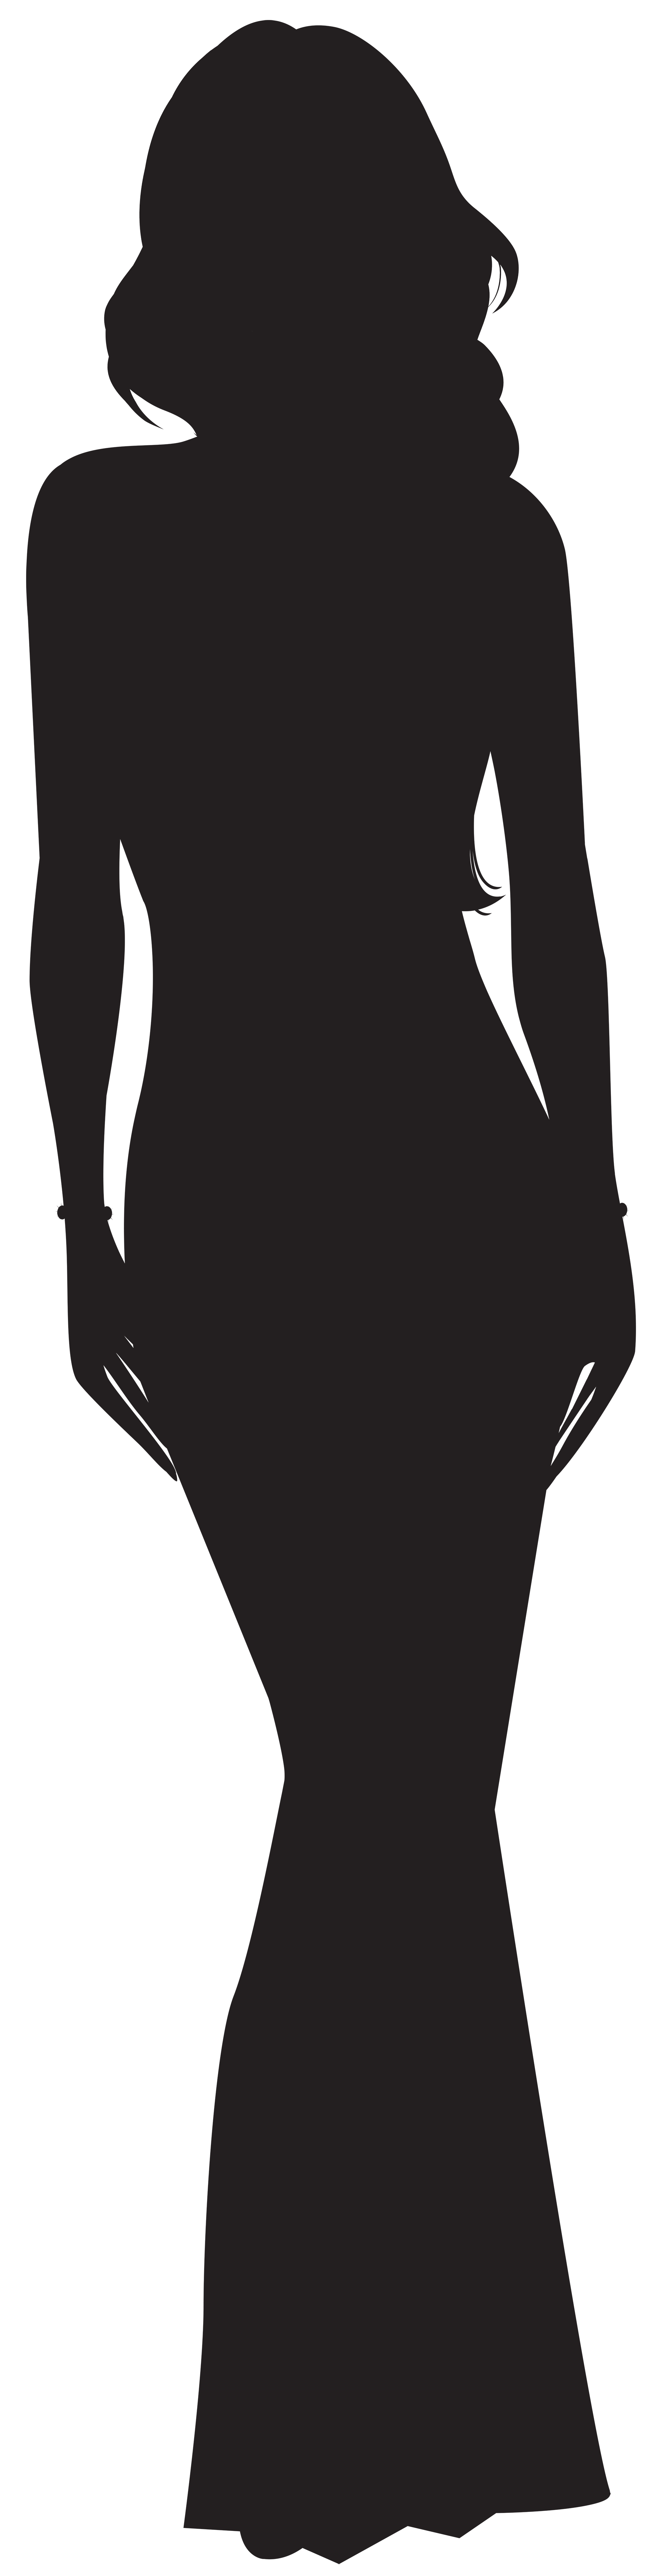 Afro clipart png. Woman silhouette images at